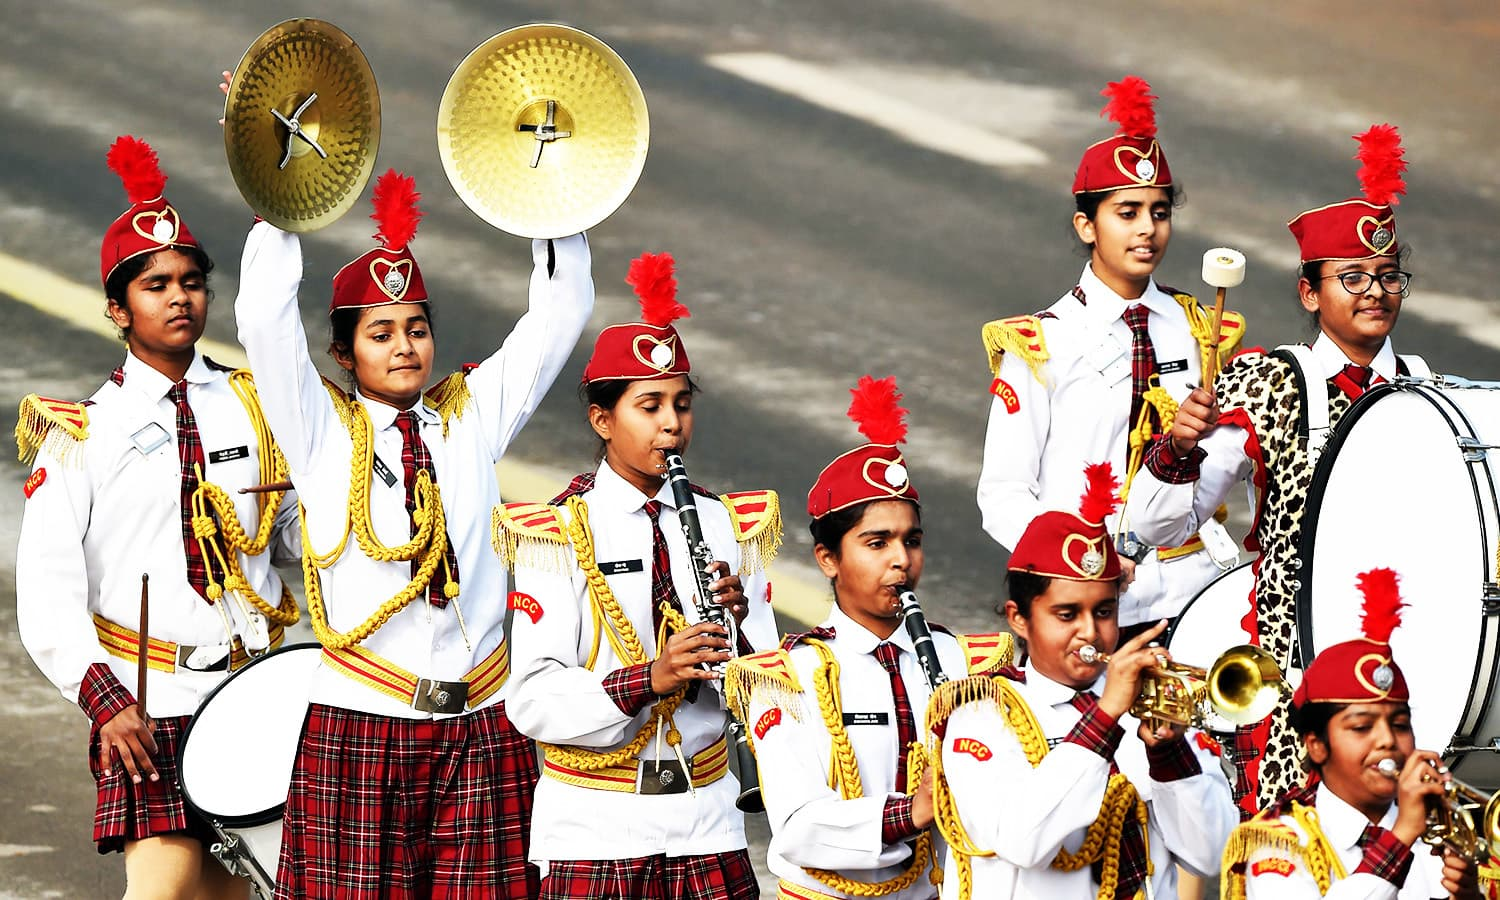 Indian Cadets from the National Cadet Corps contingent march during India's 69th Republic Day Parade in New Delhi.—AFP